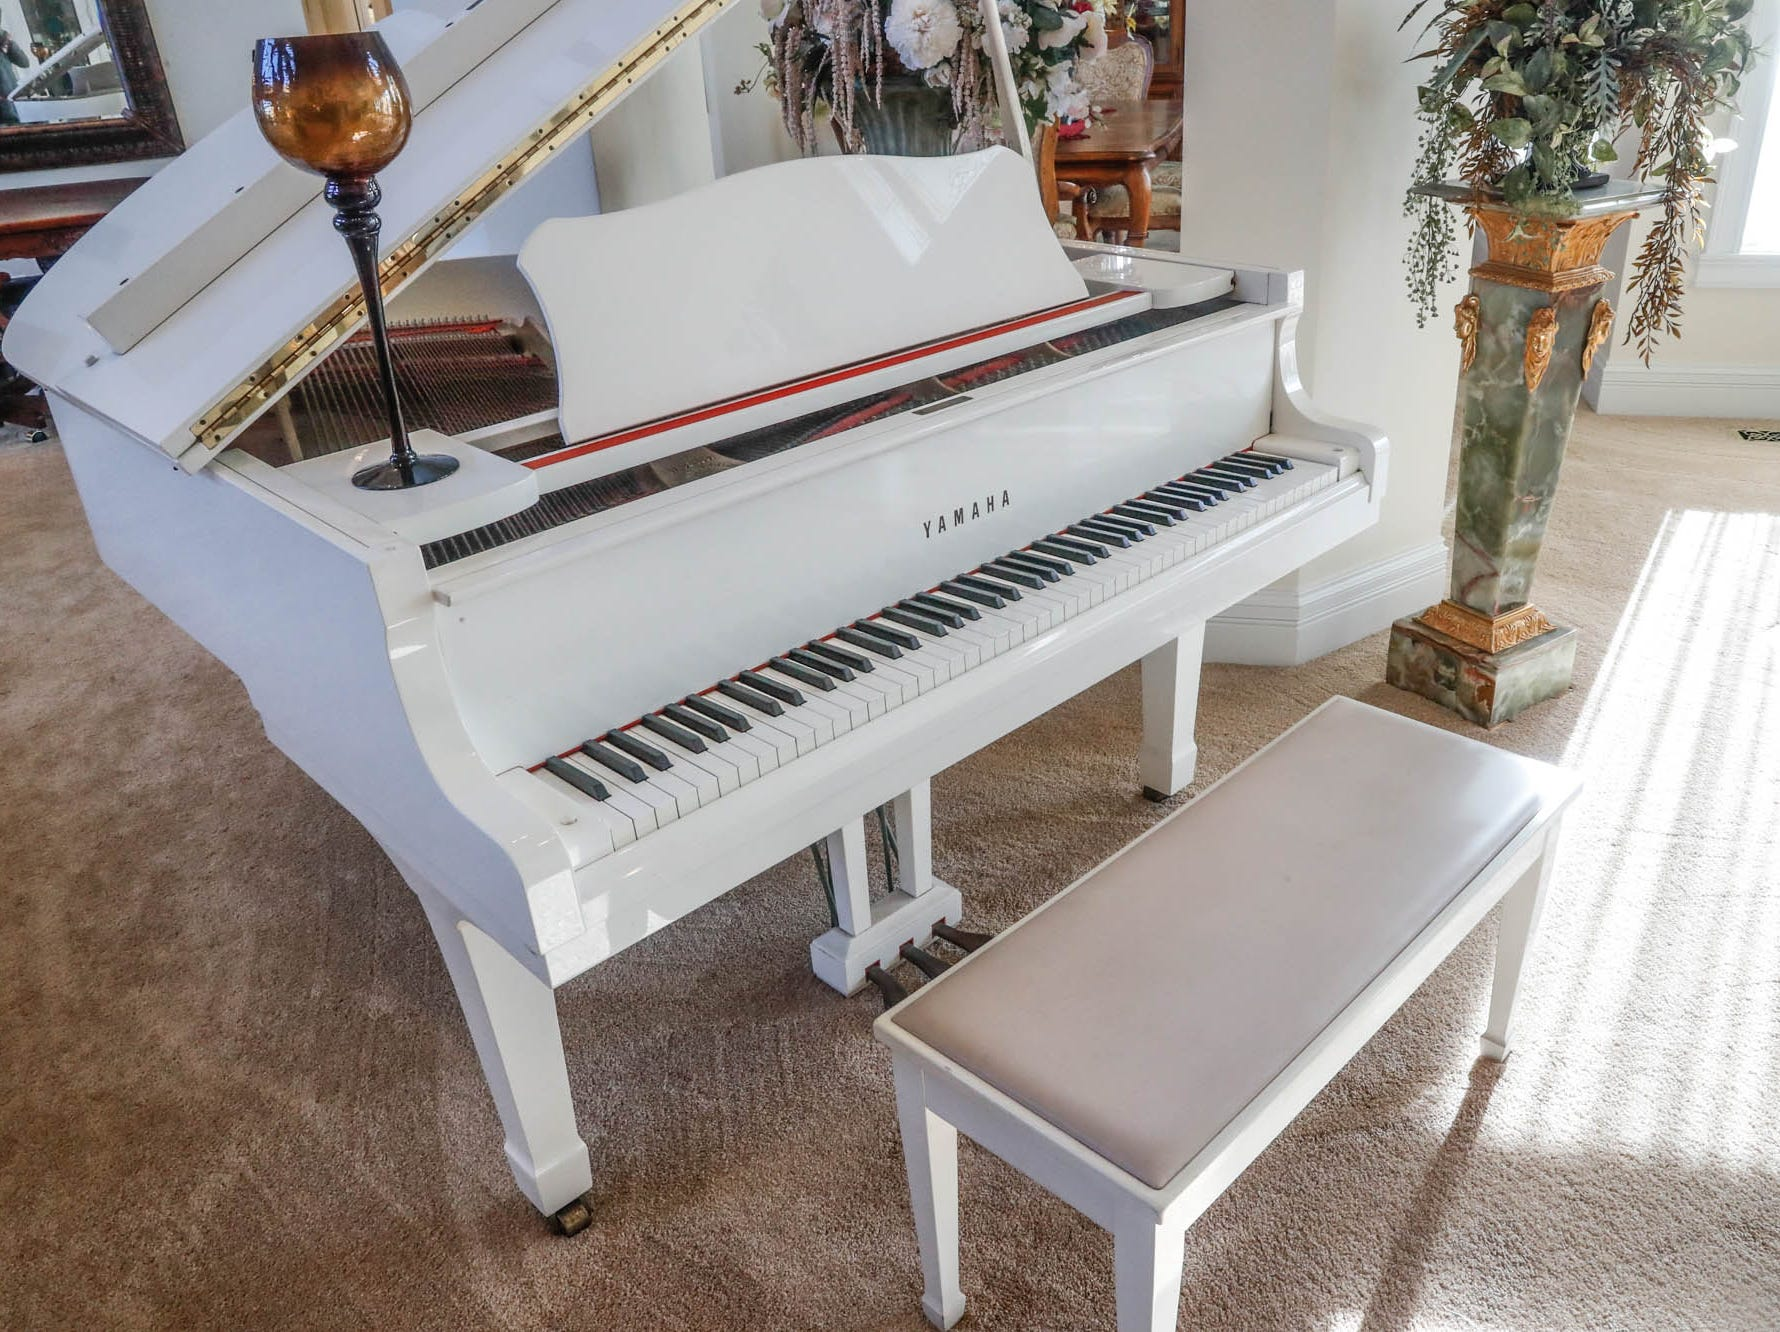 A Greenwood home up for sale at 1216 Stone Ridge Court, Greenwood, Ind., features a white piano in the open living room on Wednesday, Jan. 30, 2019. The home features 8,234 square feet, four bedrooms, two master suits, a 10 car garage, and exercise room.